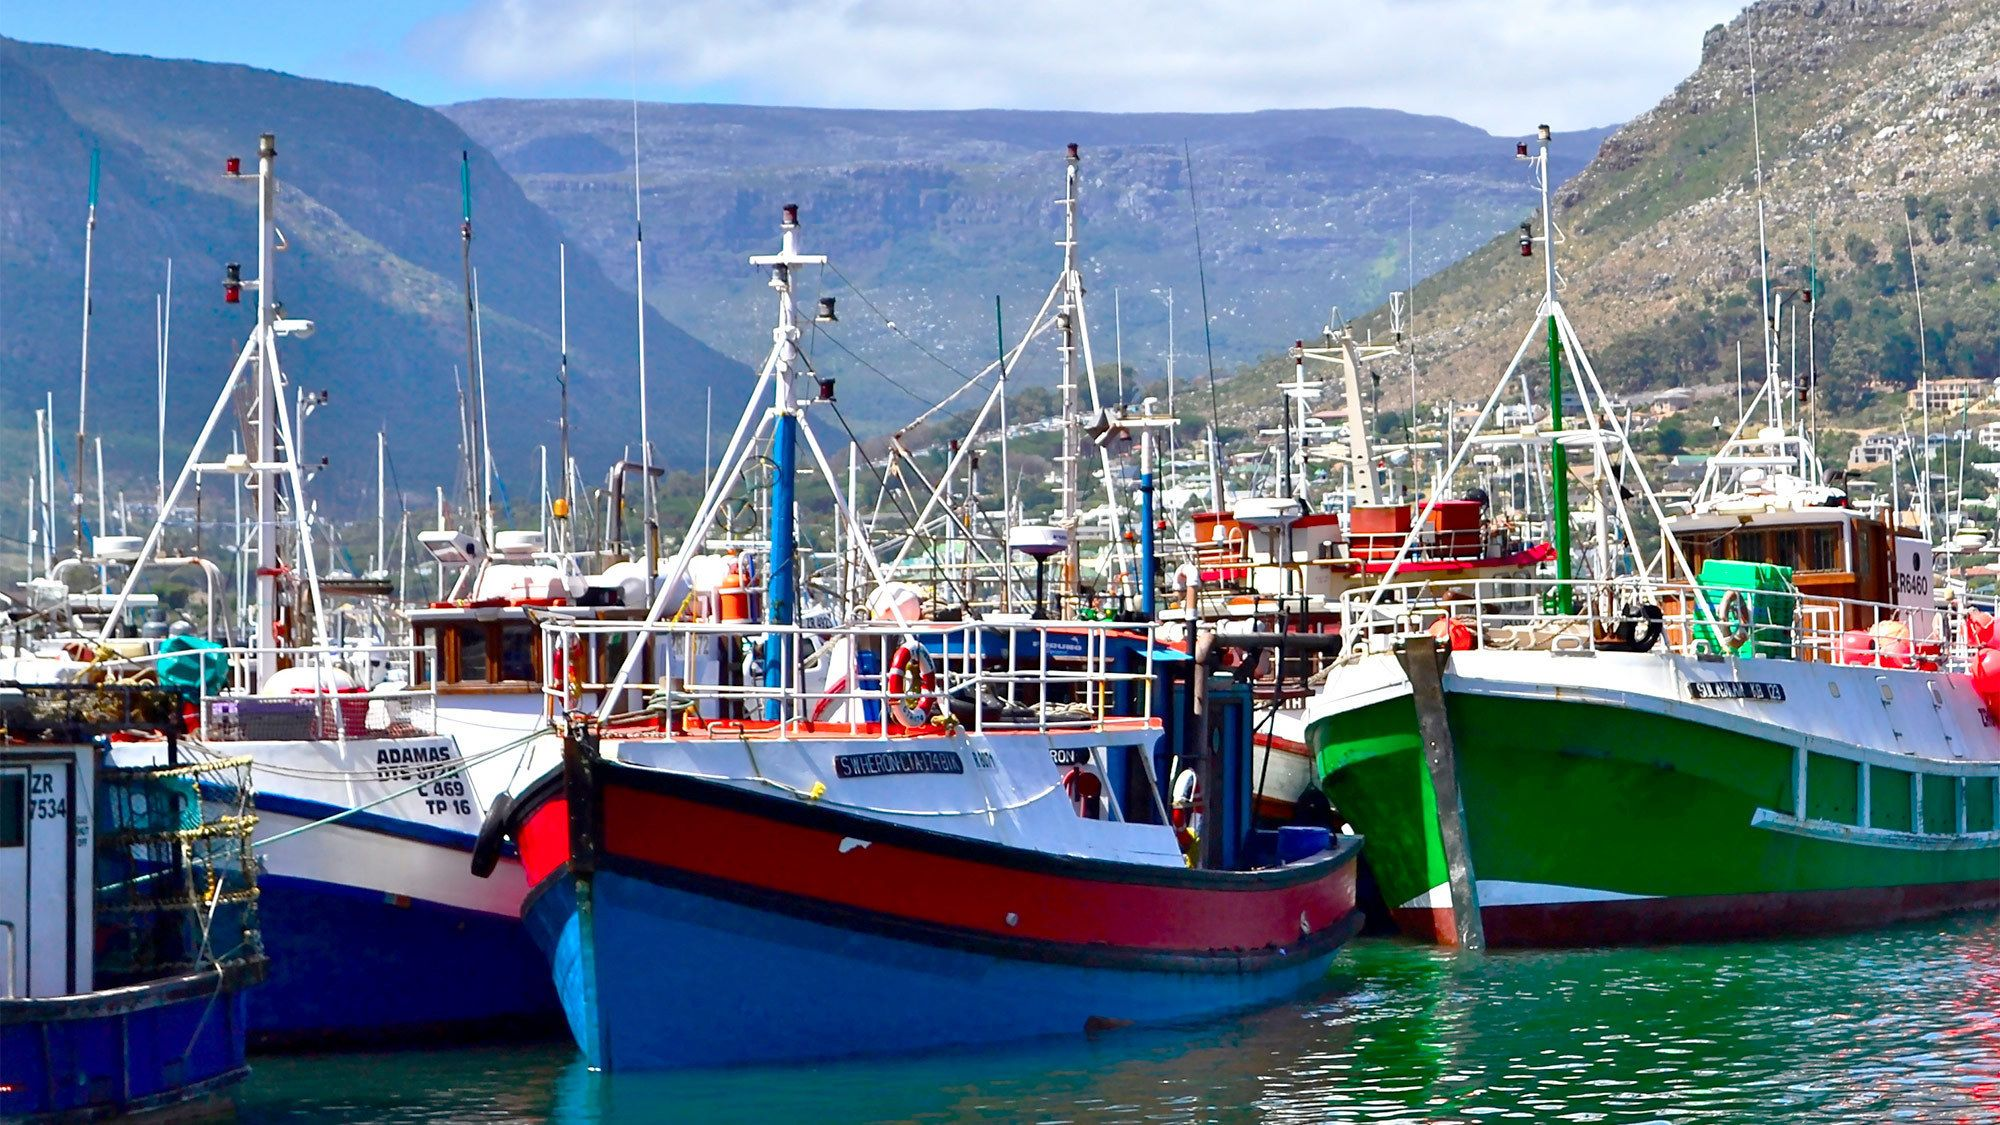 Colorful boats at the Cape Peninsular in South Africa